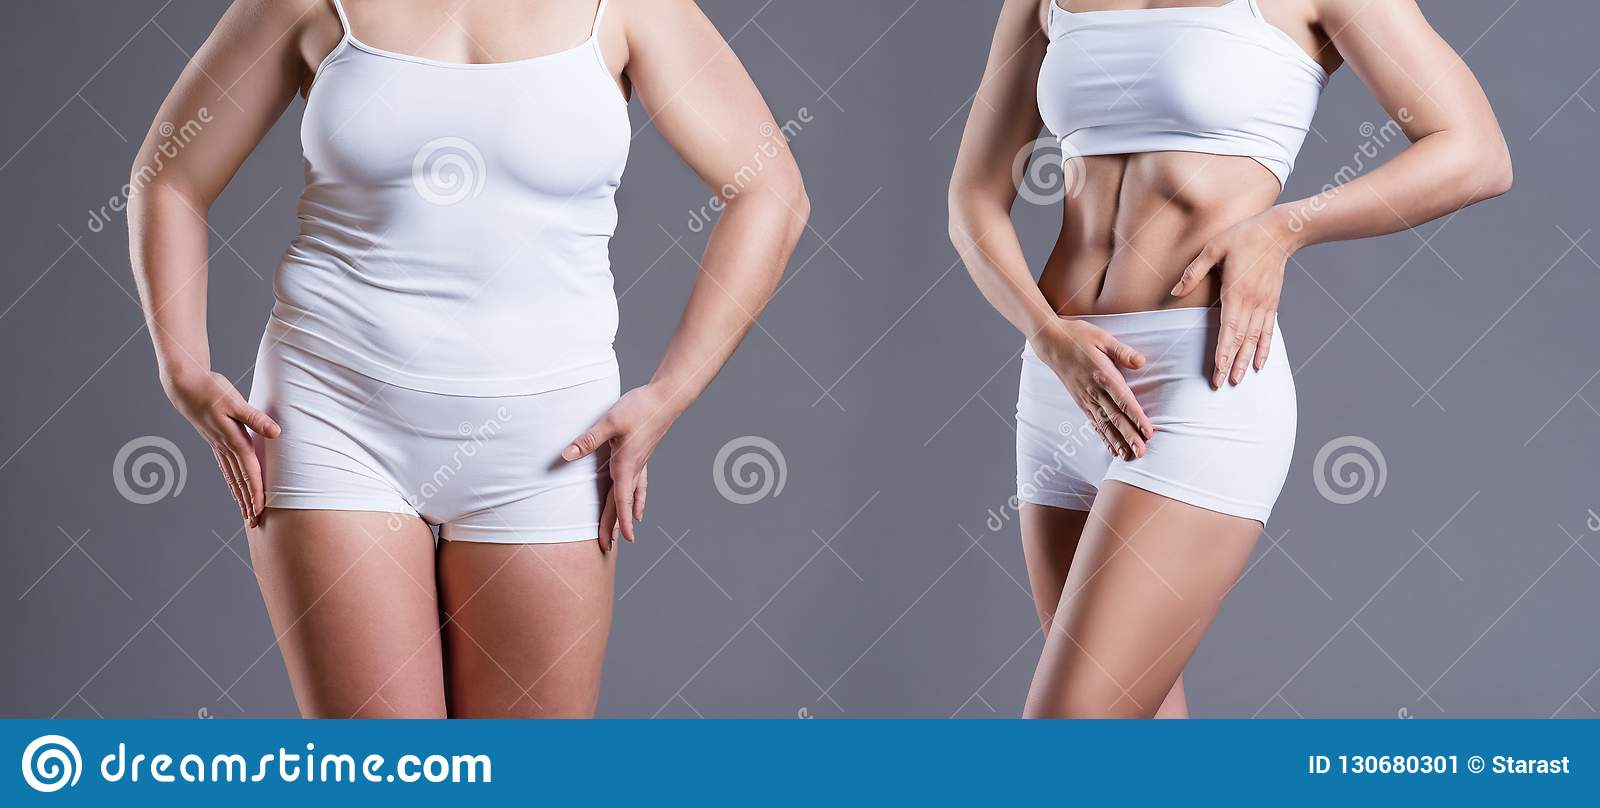 Woman S Body Before And After Weight Loss On Gray Background Stock